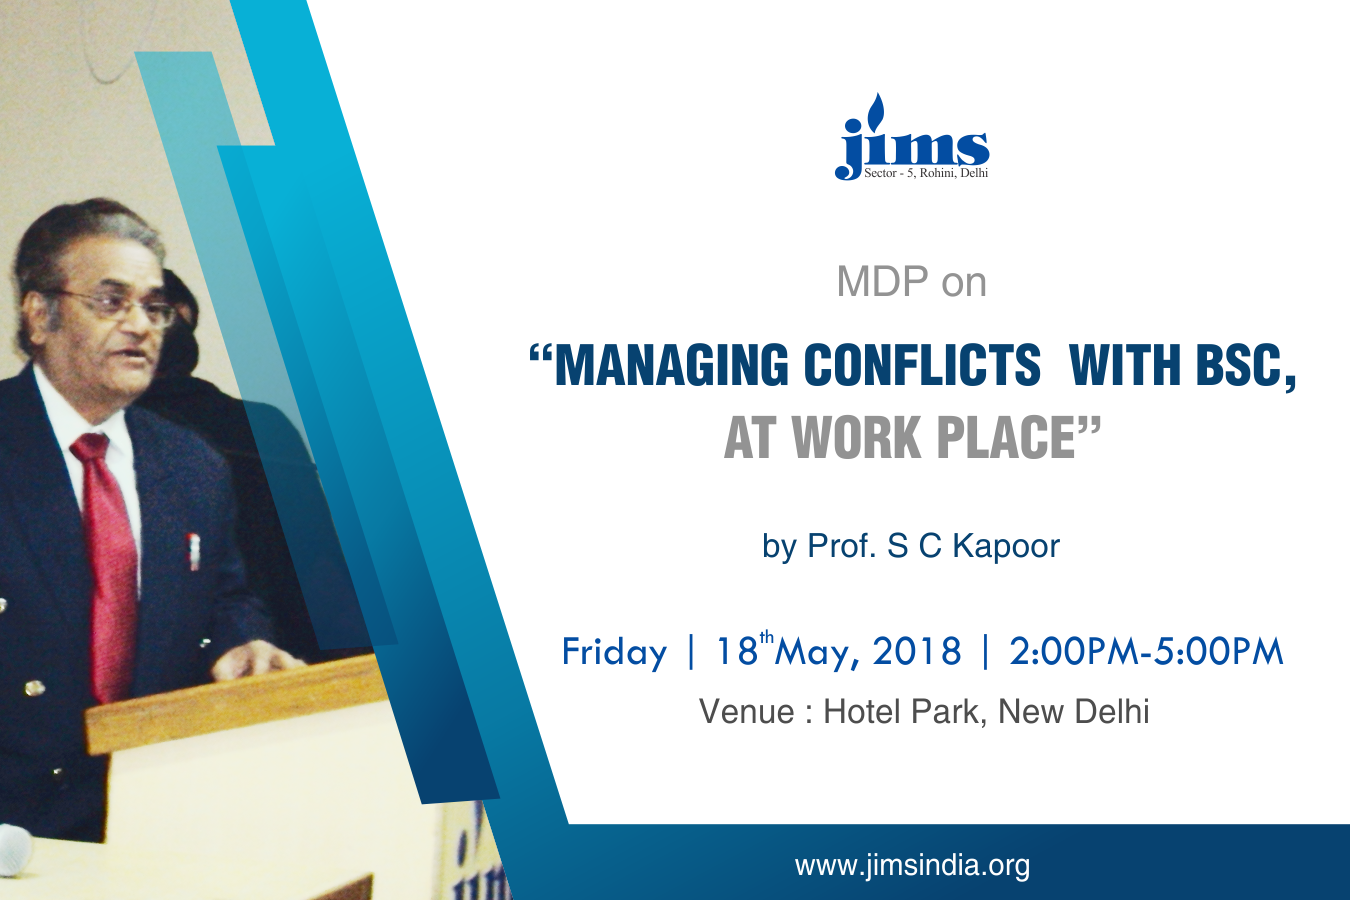 MDP on MANAGING CONFLICTS WITH BSC AT WORK PLACE by  Prof. S. C. Kapoor